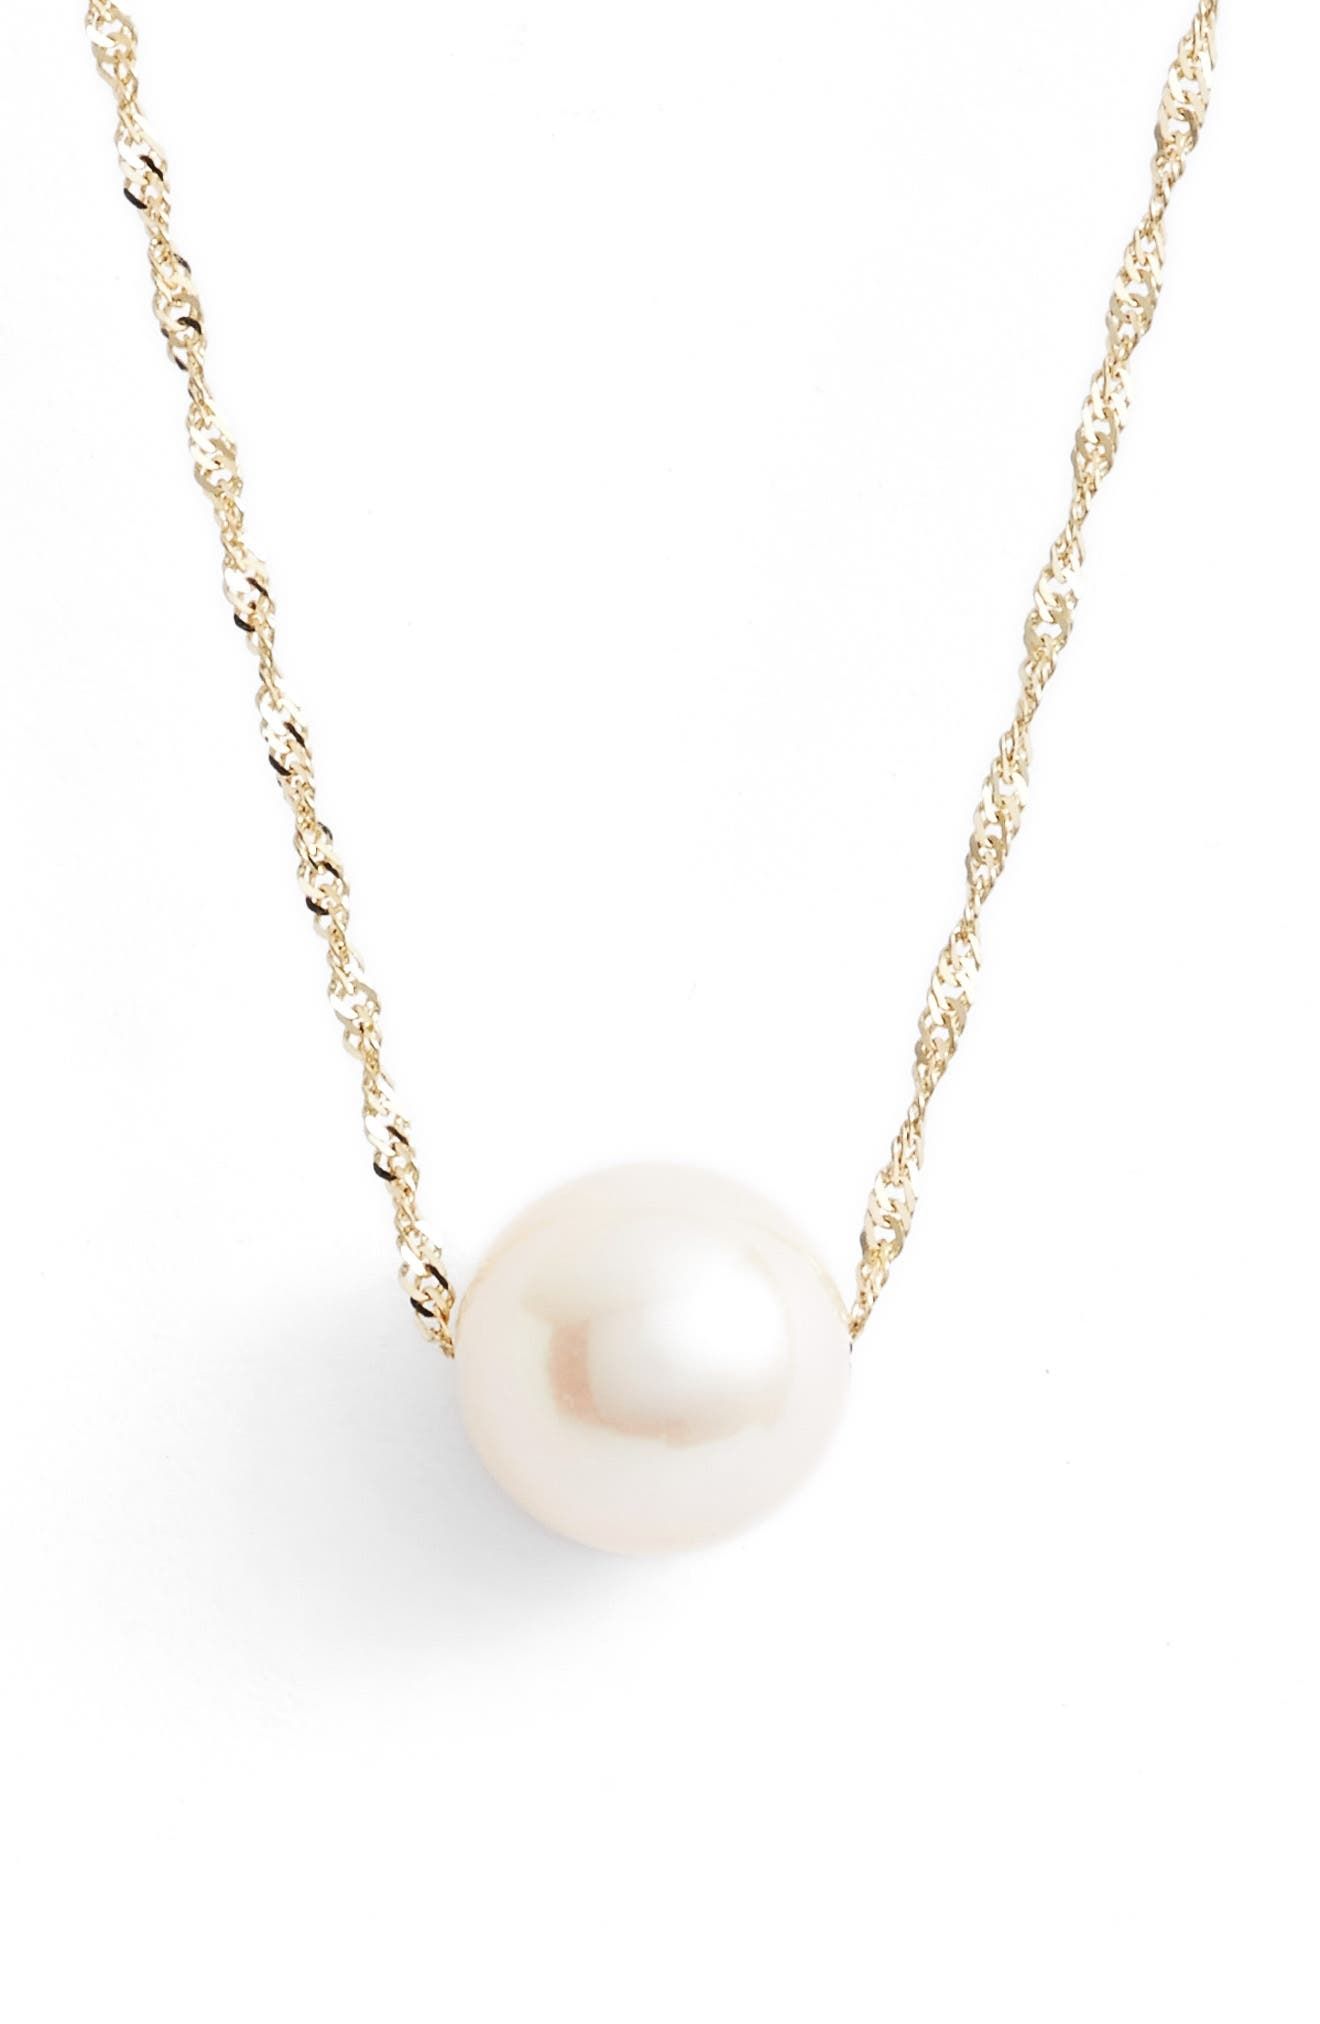 Solitaire Cultured Pearl Pendant Necklace,                         Main,                         color, YELLOW GOLD/ WHITE PEARL